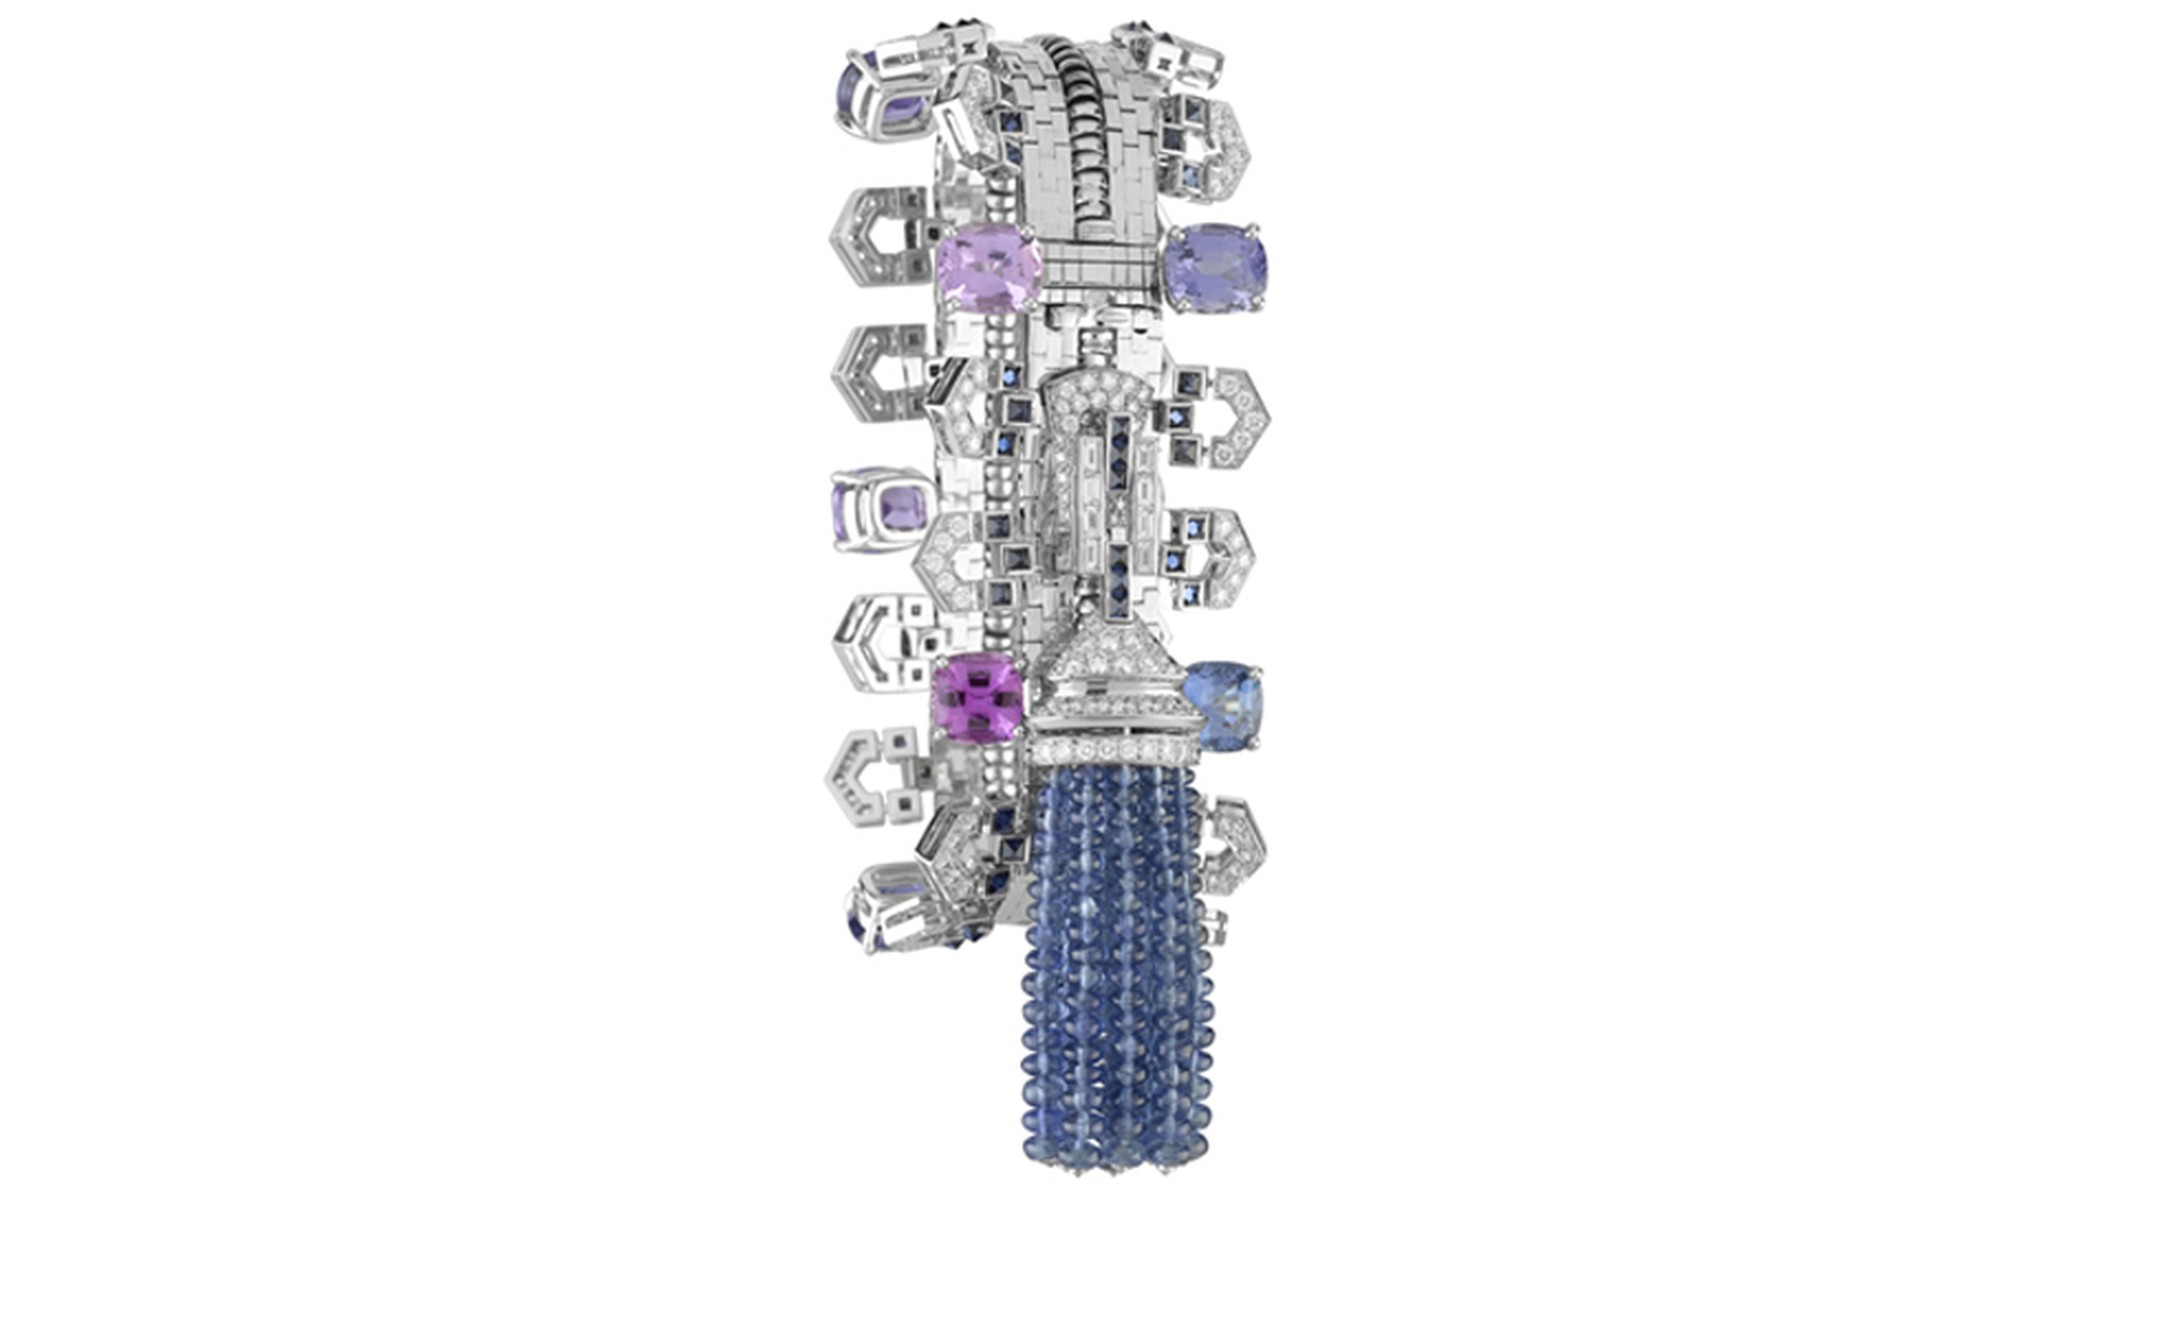 Van Cleef & Arpels Zip necklace in white gold set with diamonds, cushion-cut multicoloured sapphires and sapphires.  Worn as a bracelet. POA